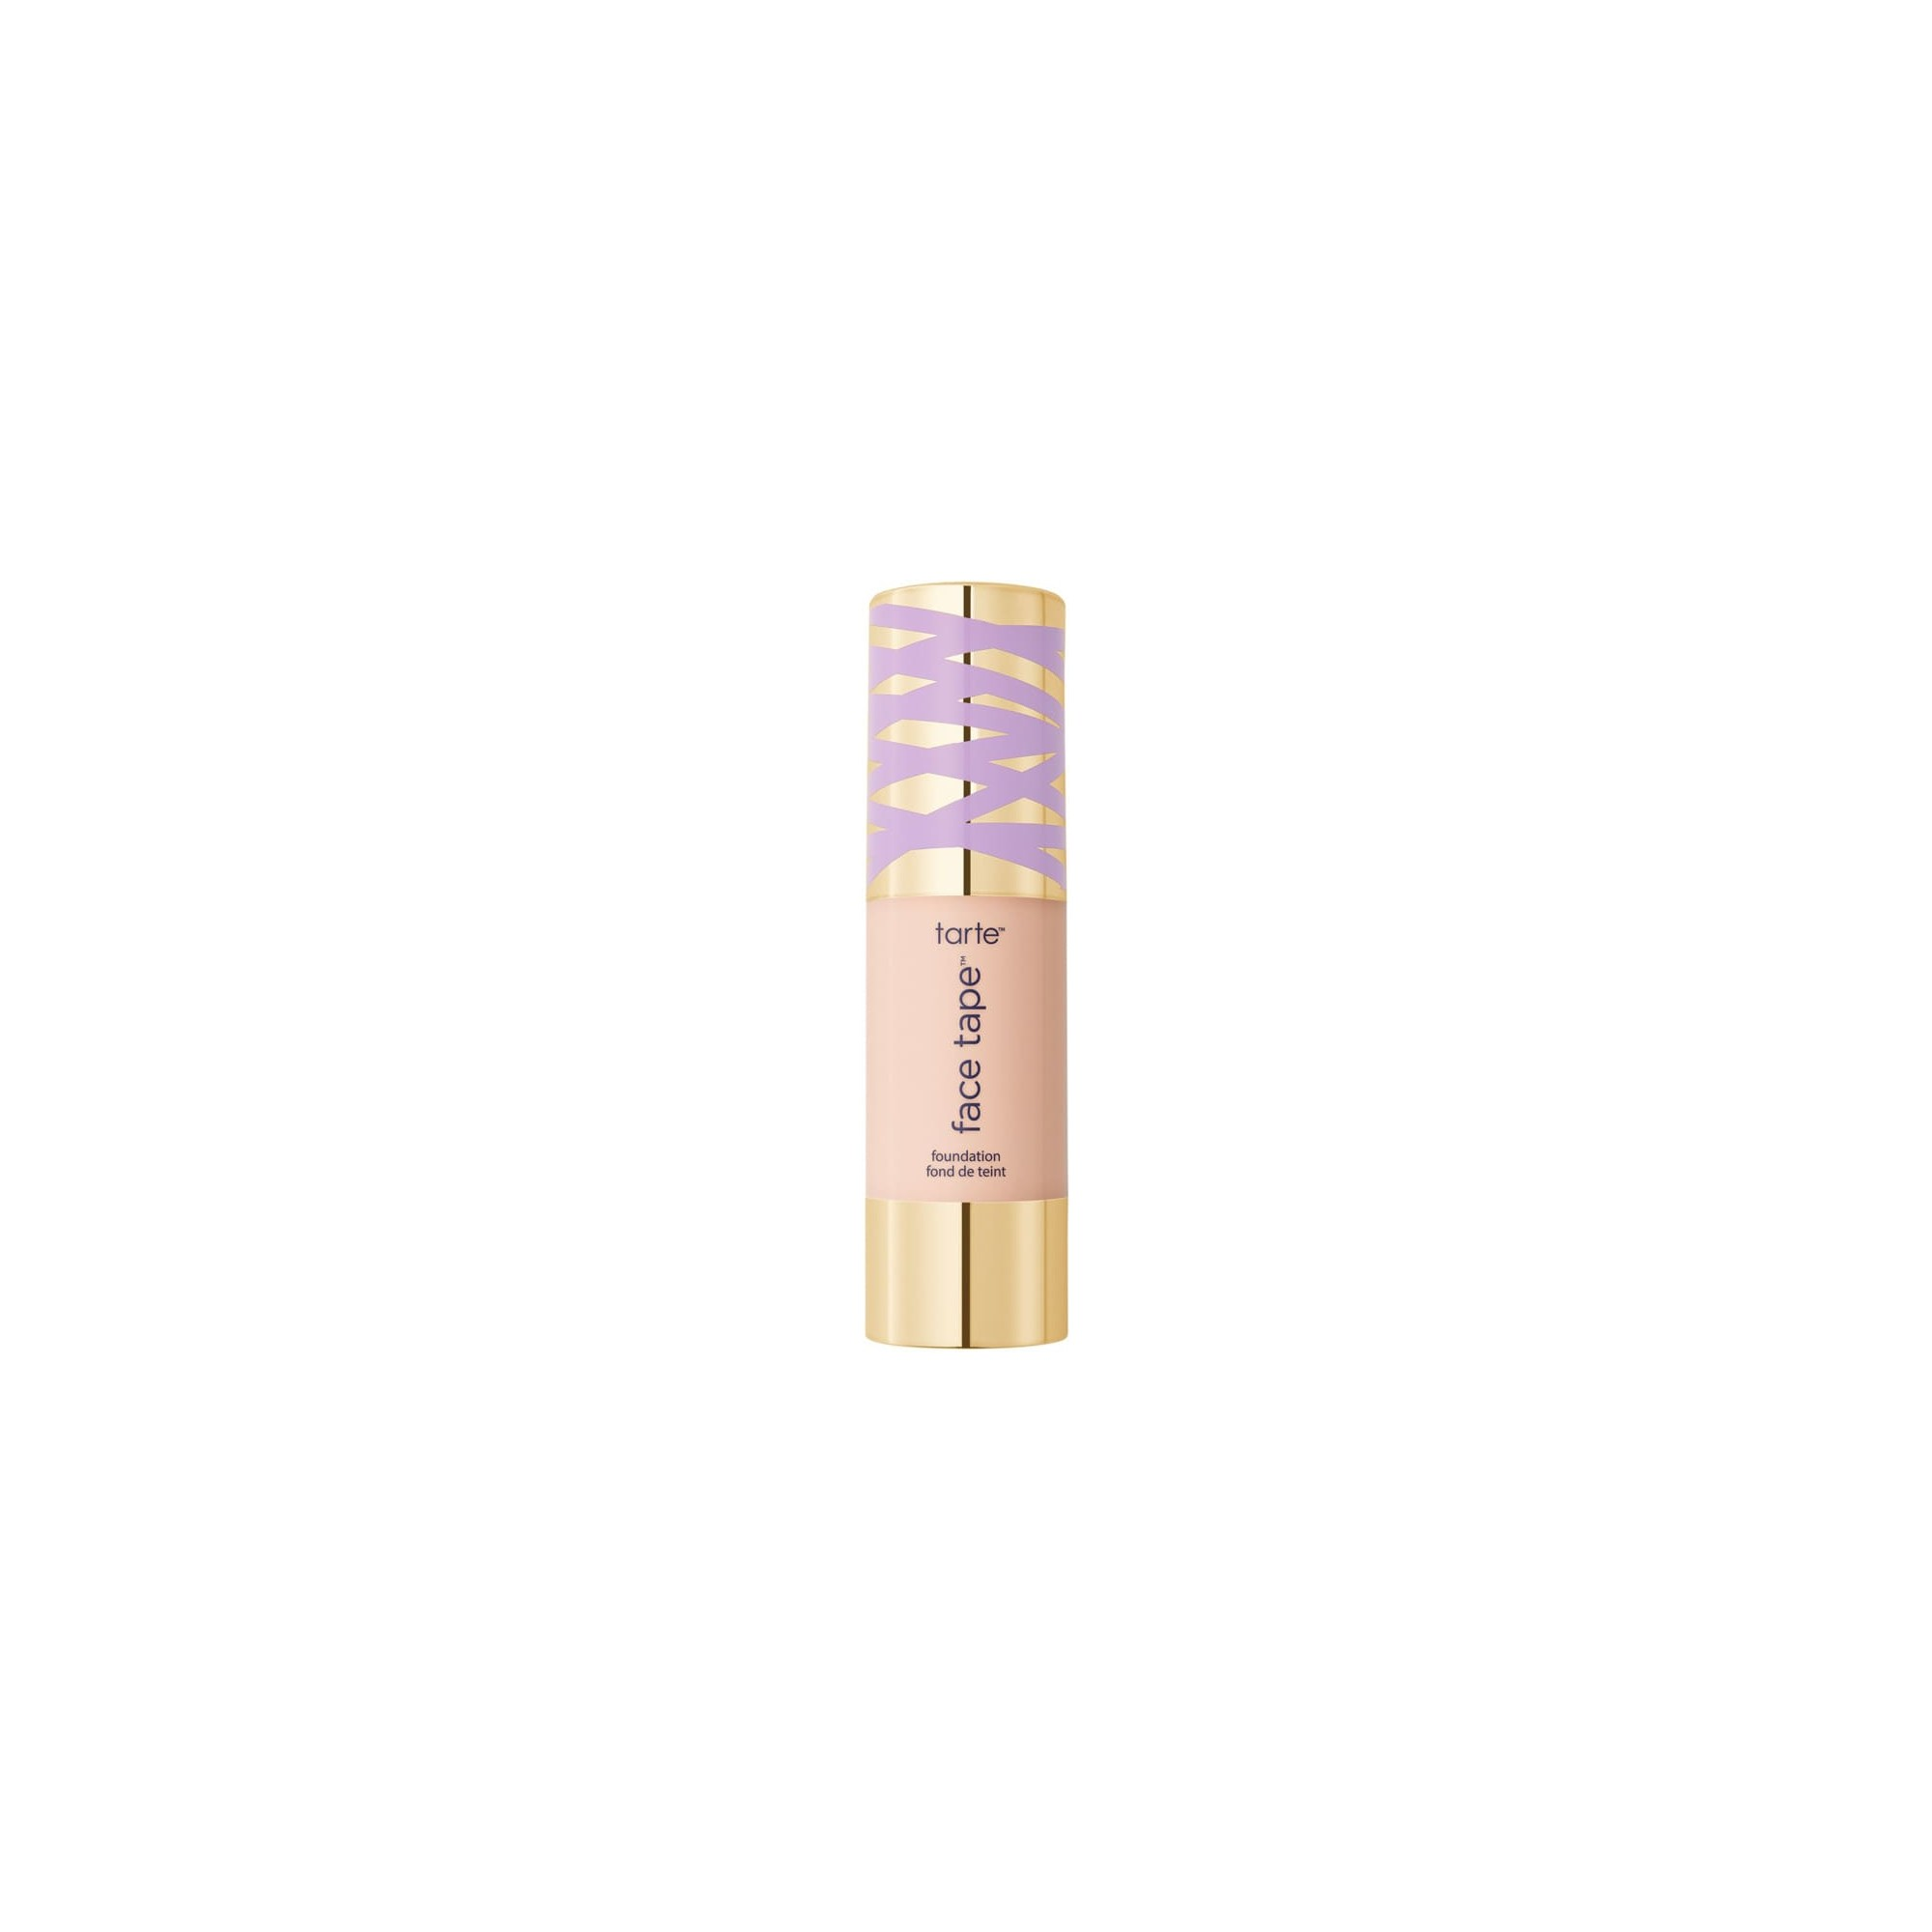 Tarte Face Tape Foundation 8B Porcelain Beige